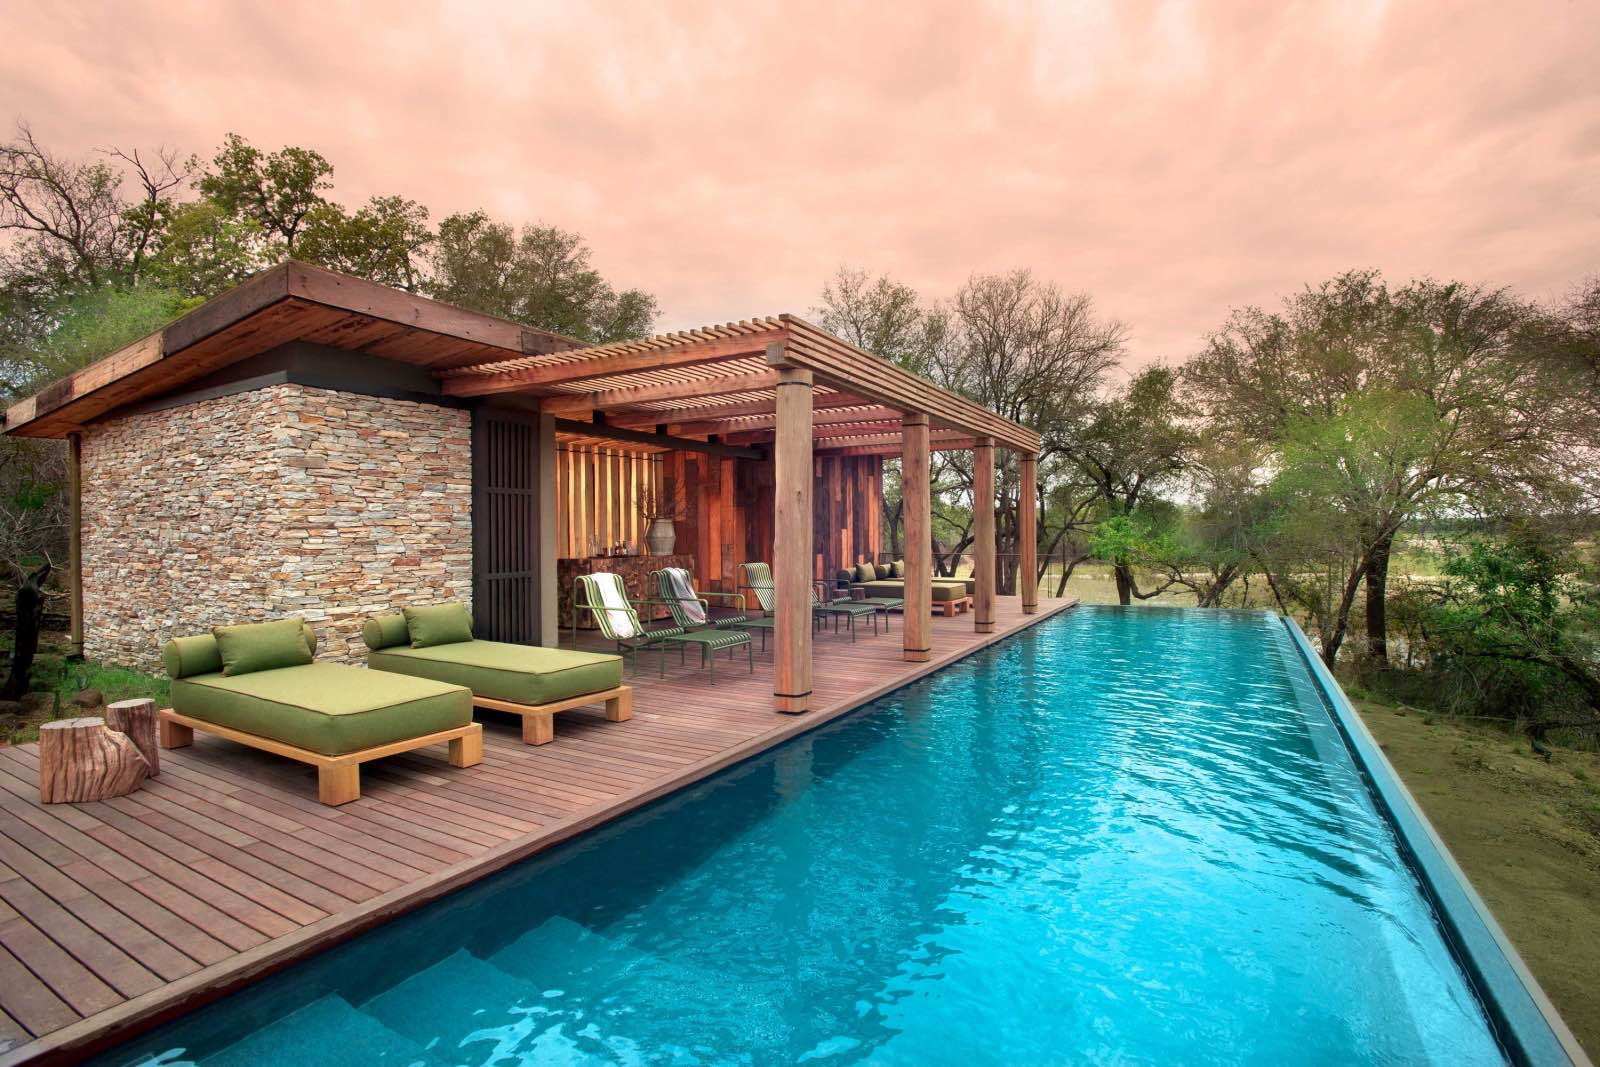 A long lap pool and plenty of space to relax and lounge alongside it